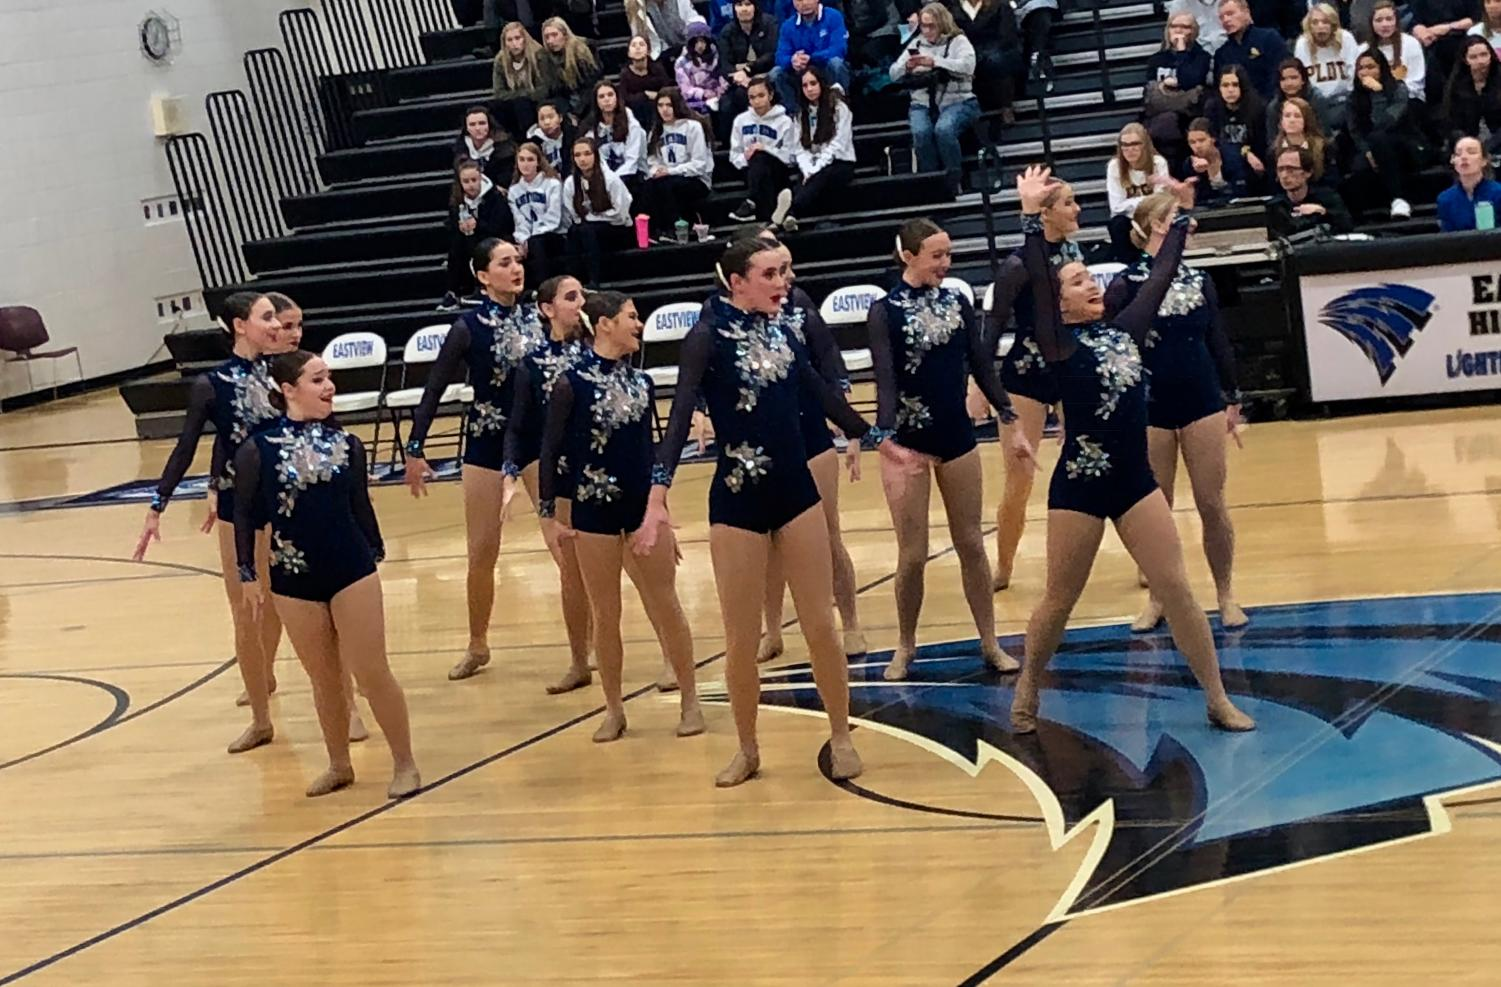 BSMDT prepares for postseason at the Eastview Invite, one week before Sections